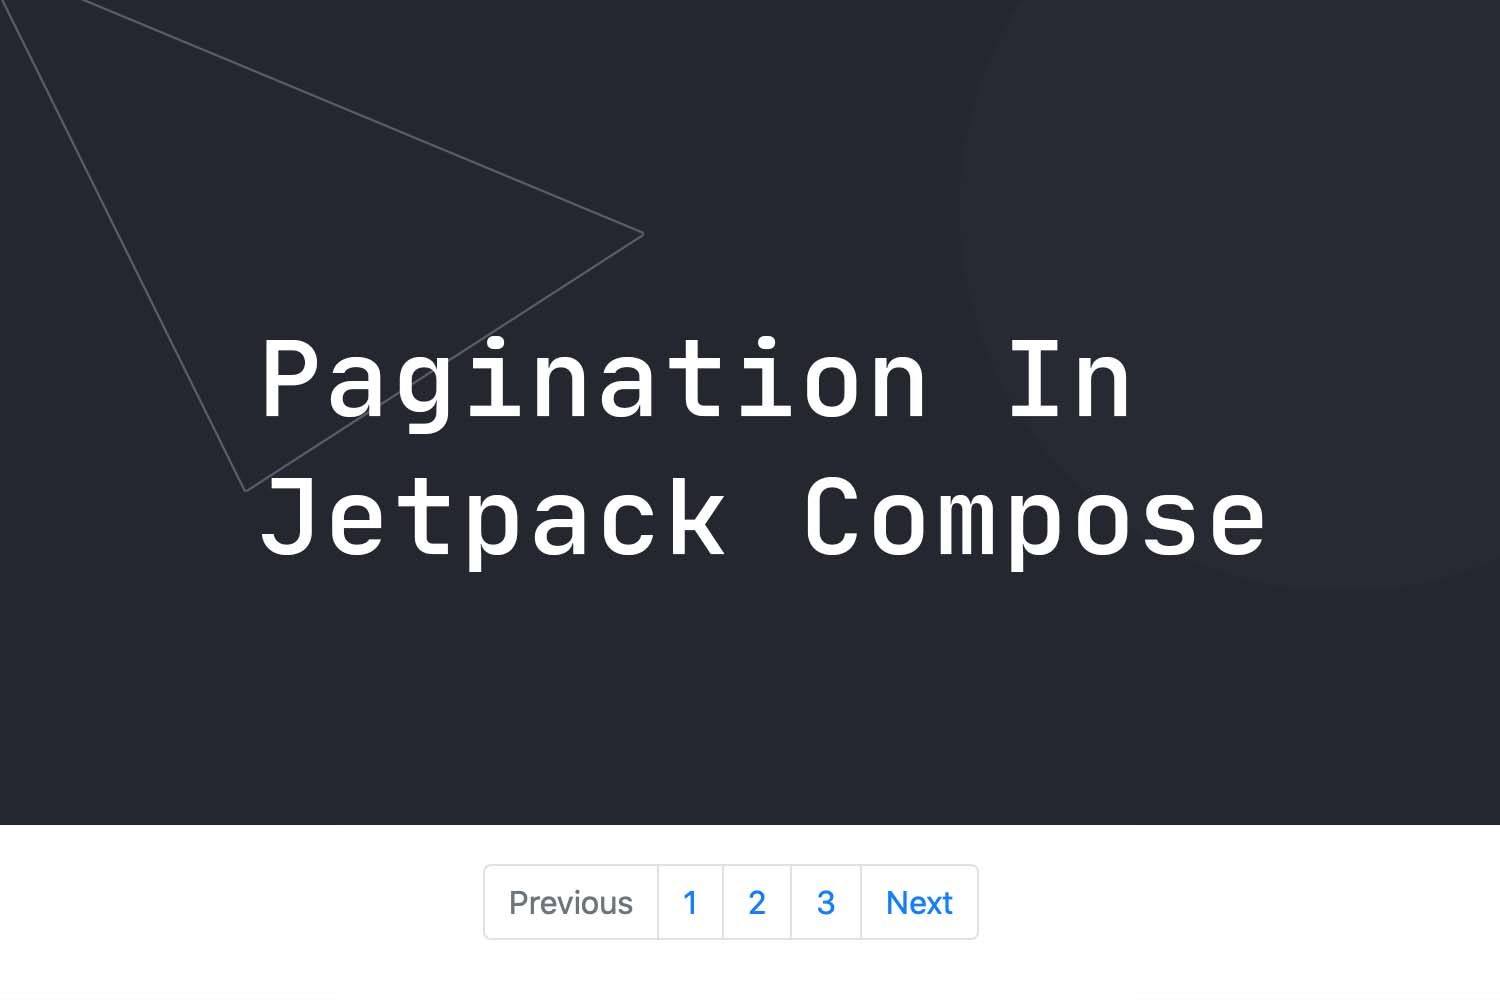 Pagination in Jetpack Compose